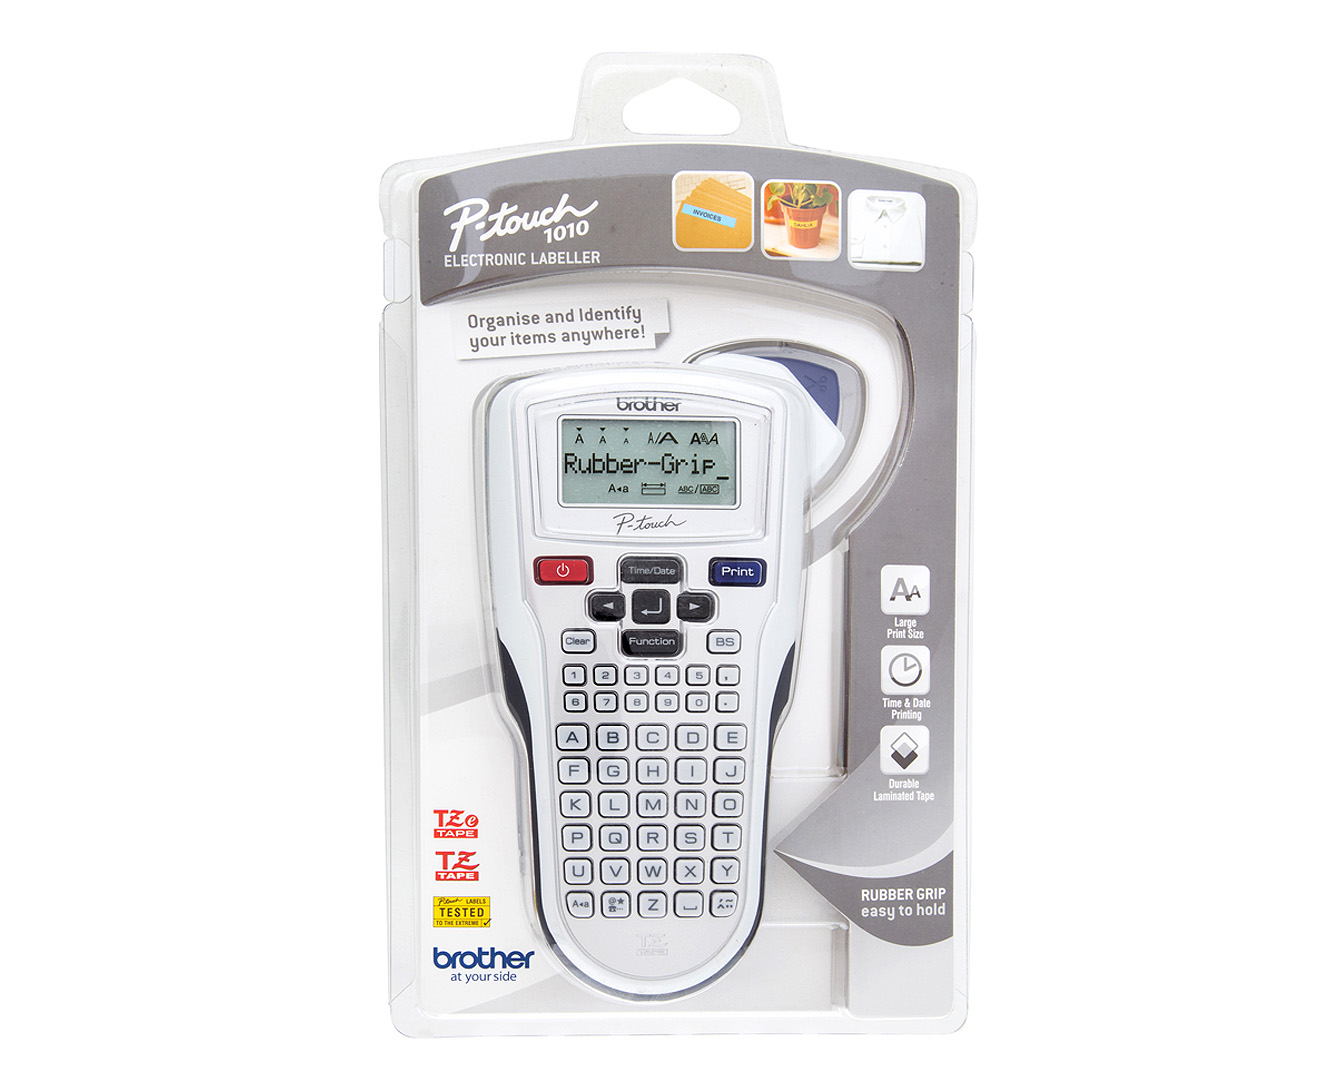 brother pt 1010 p touch electronic label maker silver ebay. Black Bedroom Furniture Sets. Home Design Ideas